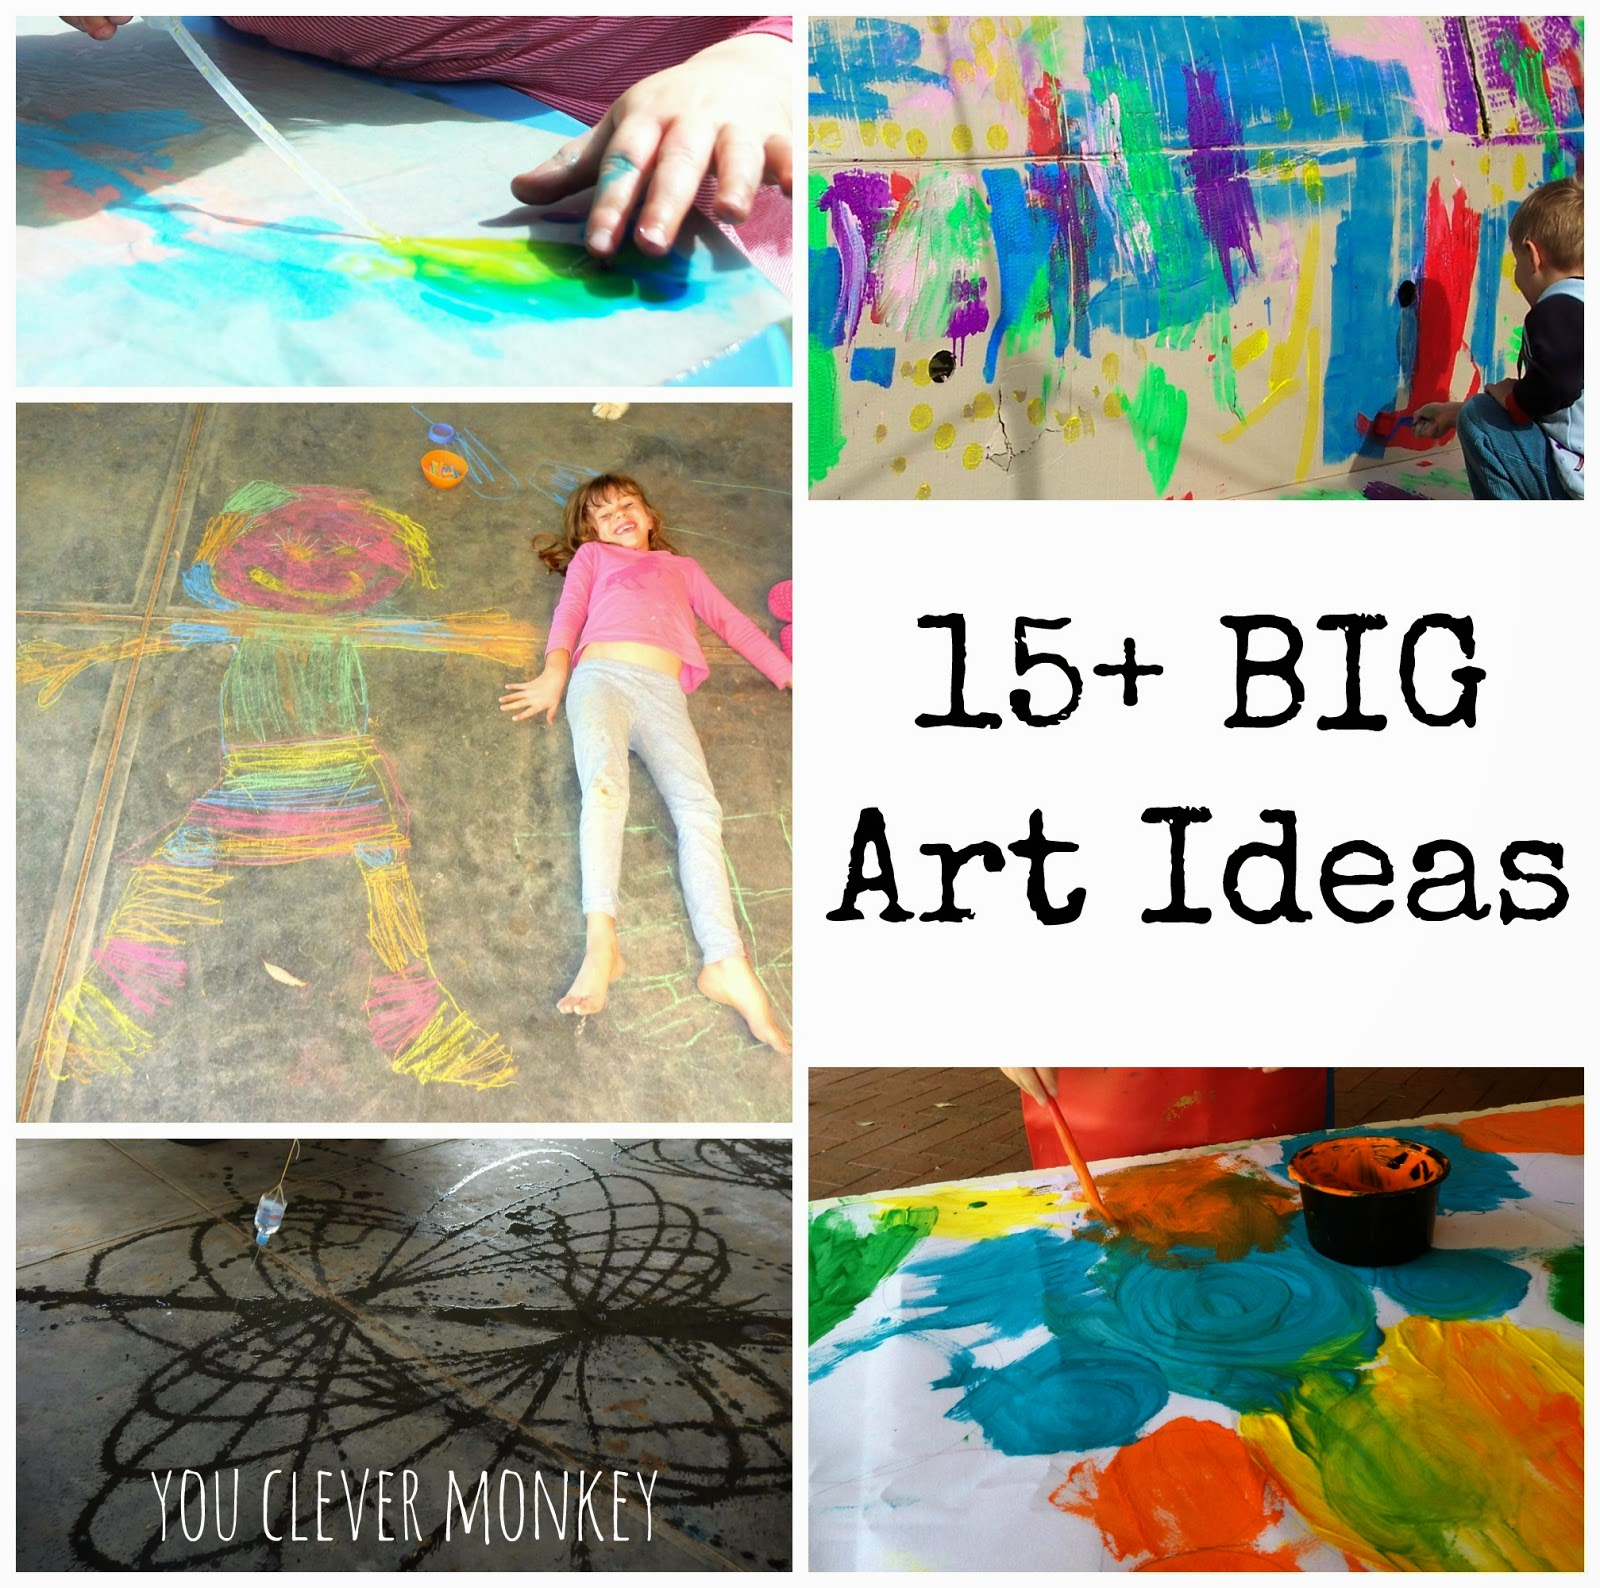 BIG Art 15 Ideas For Projects You Clever Monkey